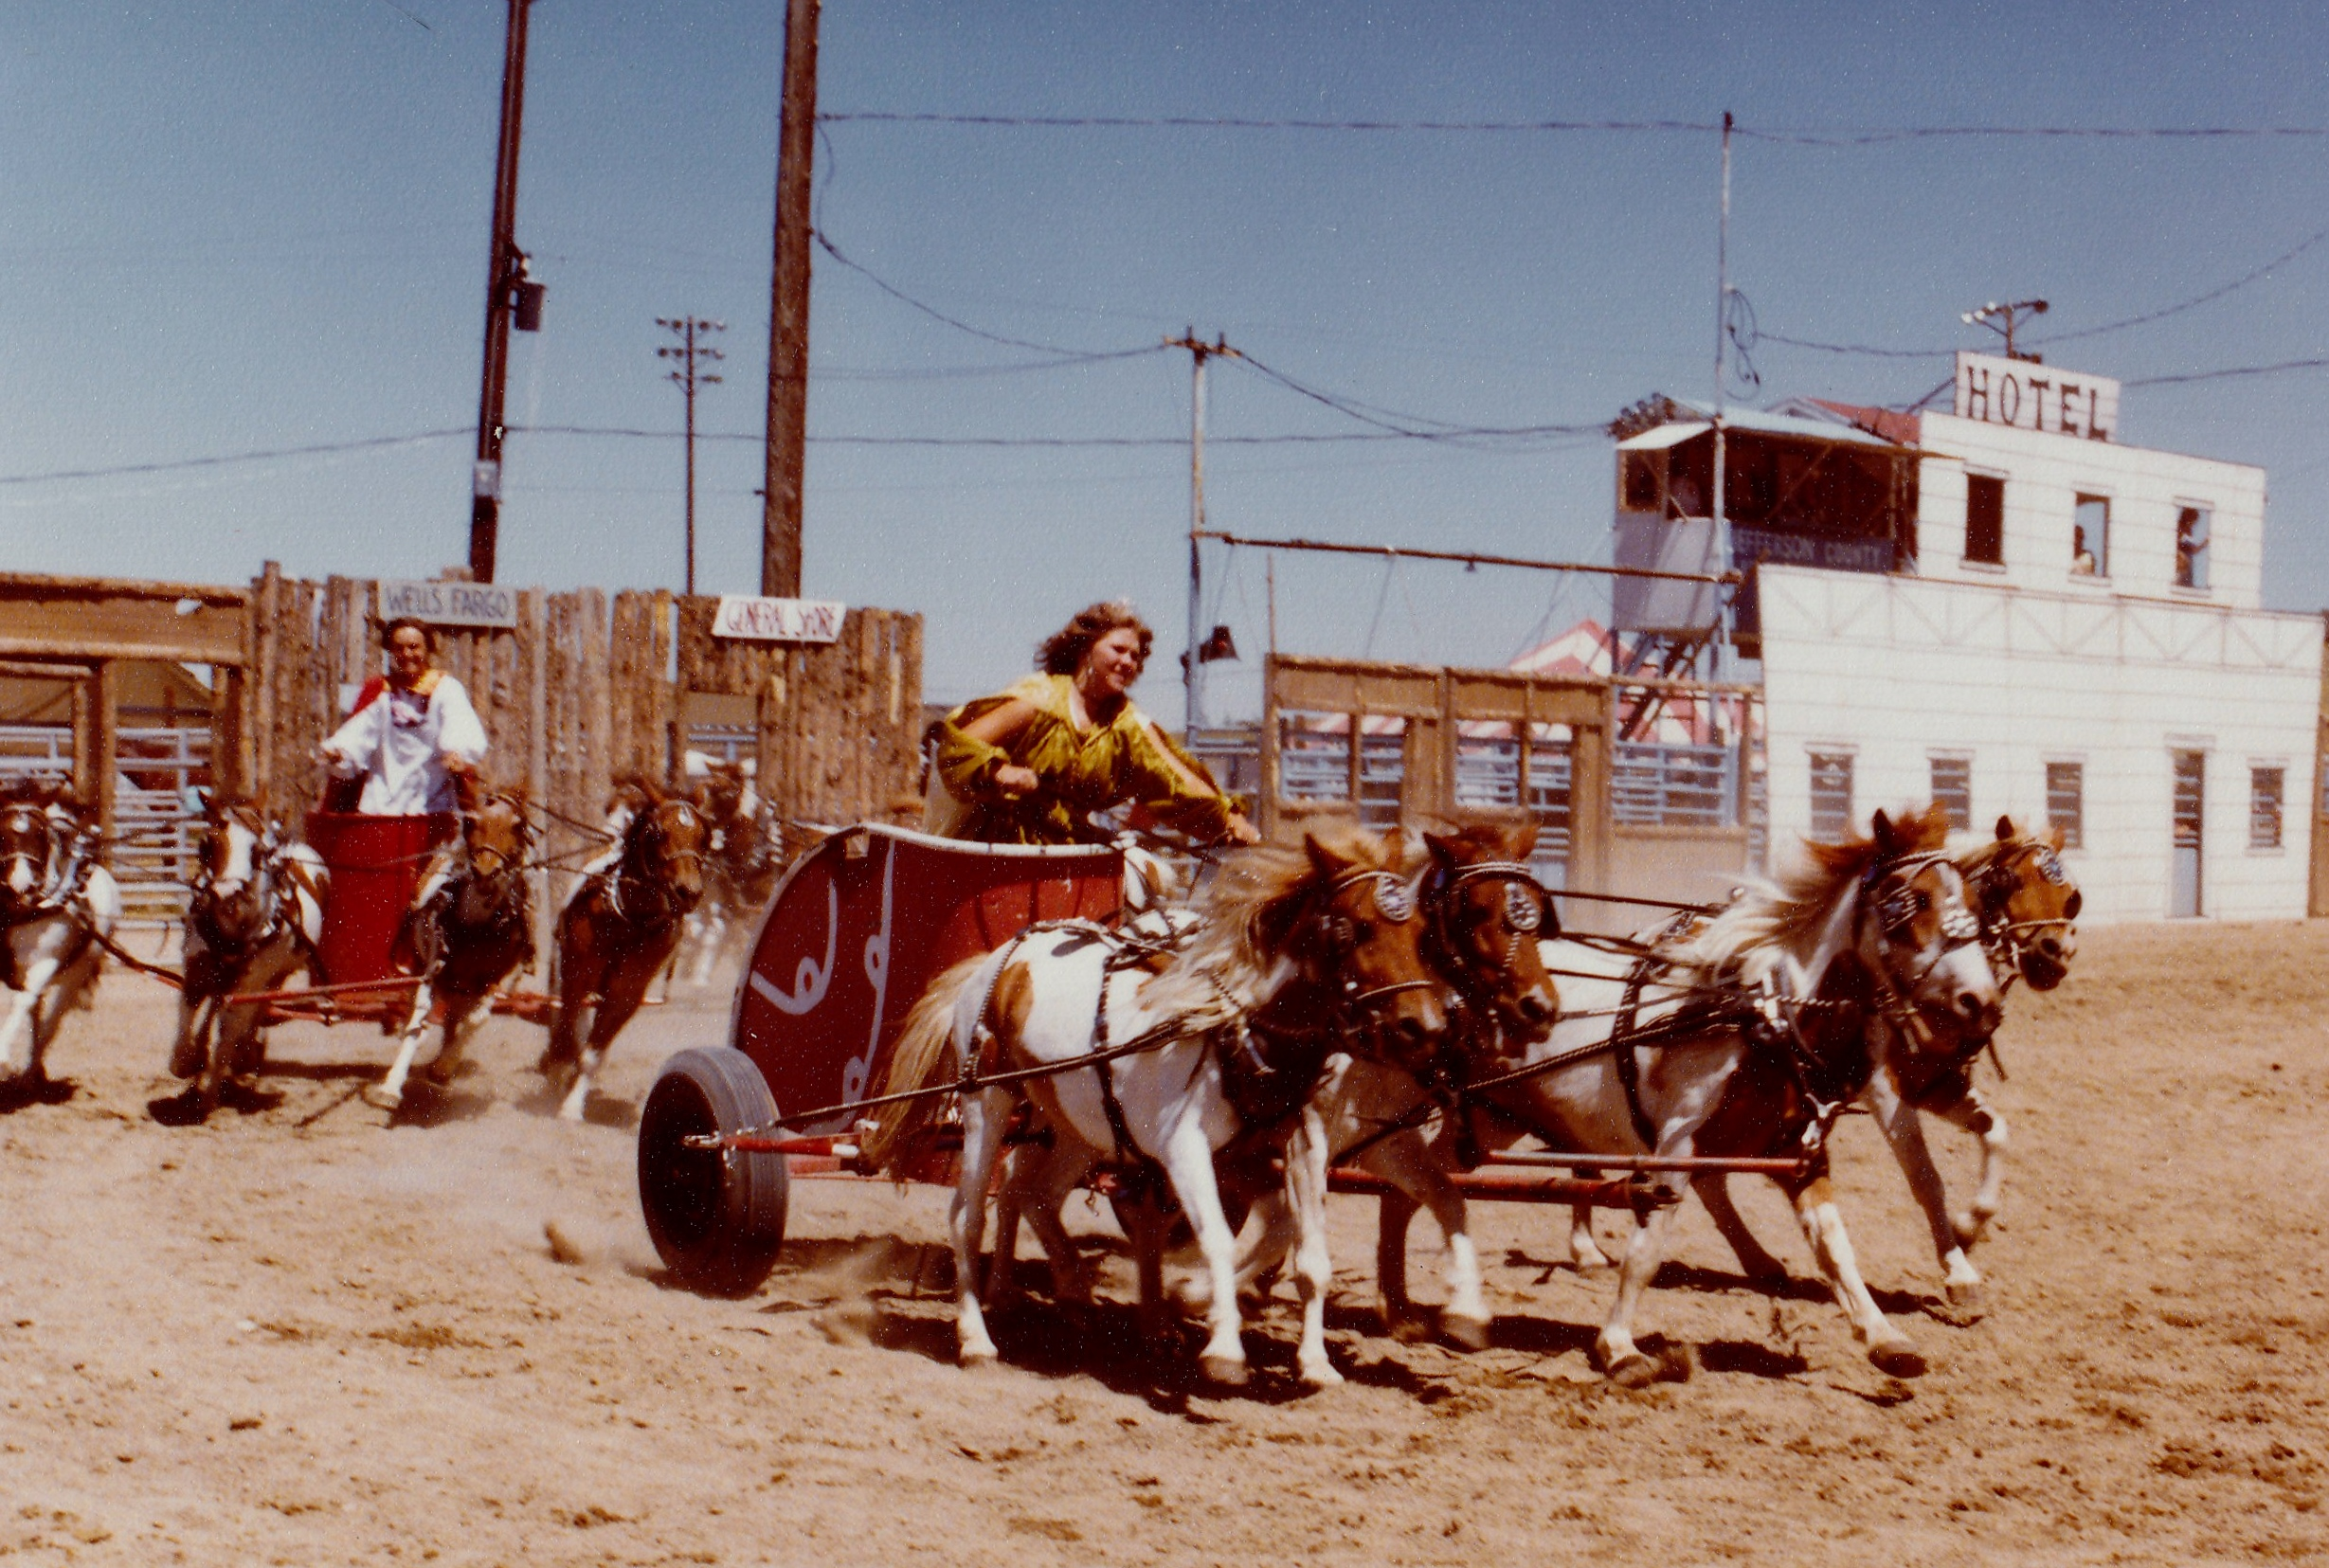 Debbie Parr drives her pony chariot at one of the Festival of the West arena shows in 1980.